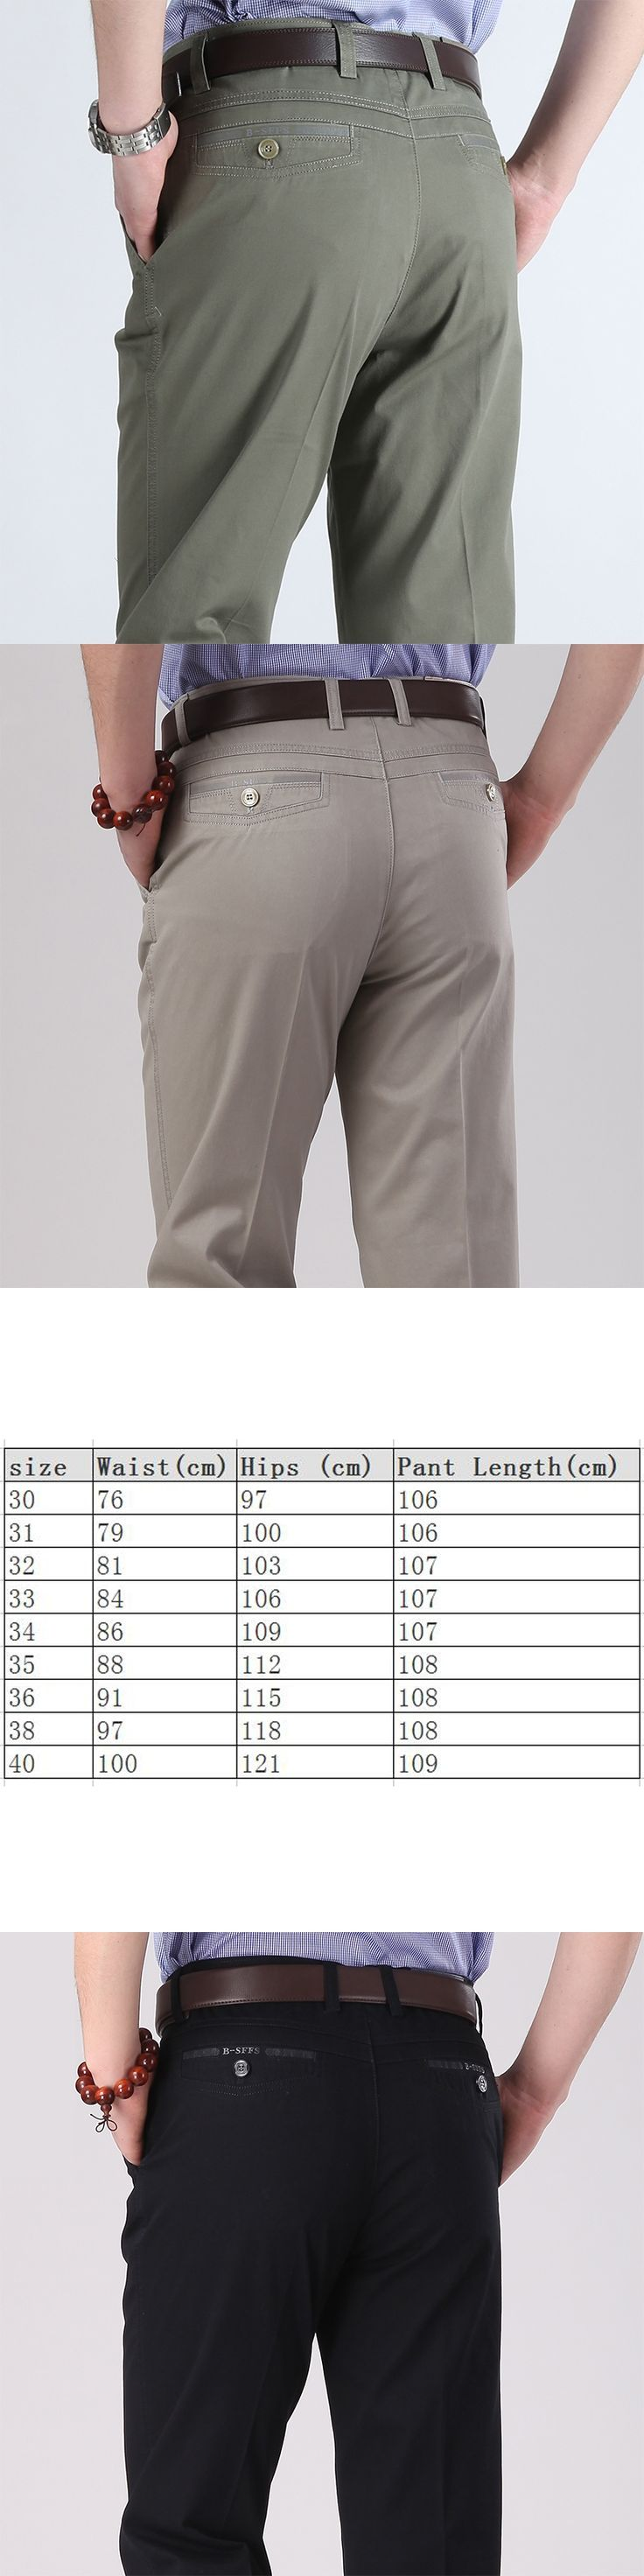 Men's Casual Long Pants Cotton Solid Thin Loose Straight Trousers Male Classic Brand High Quality Business